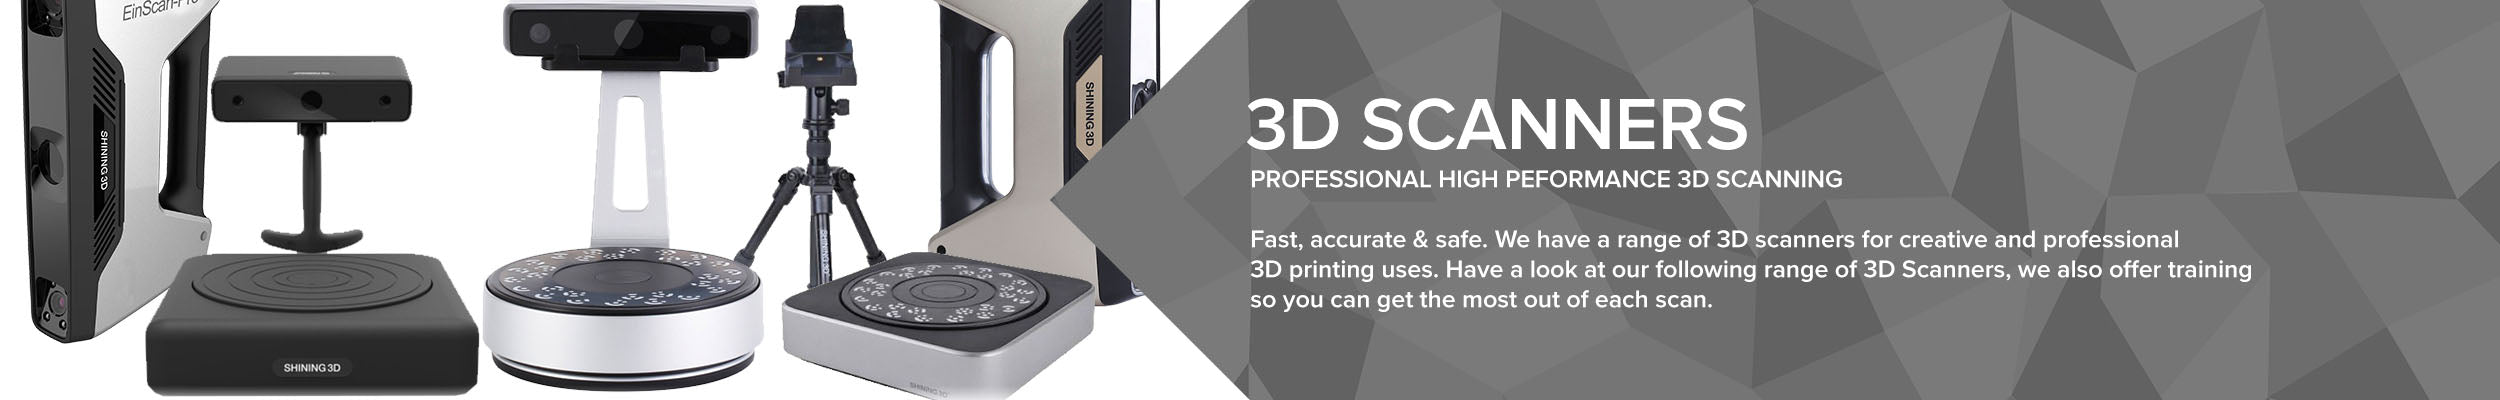 Professional High-Performance 3D Scanners in the UK | 3DGBIRE